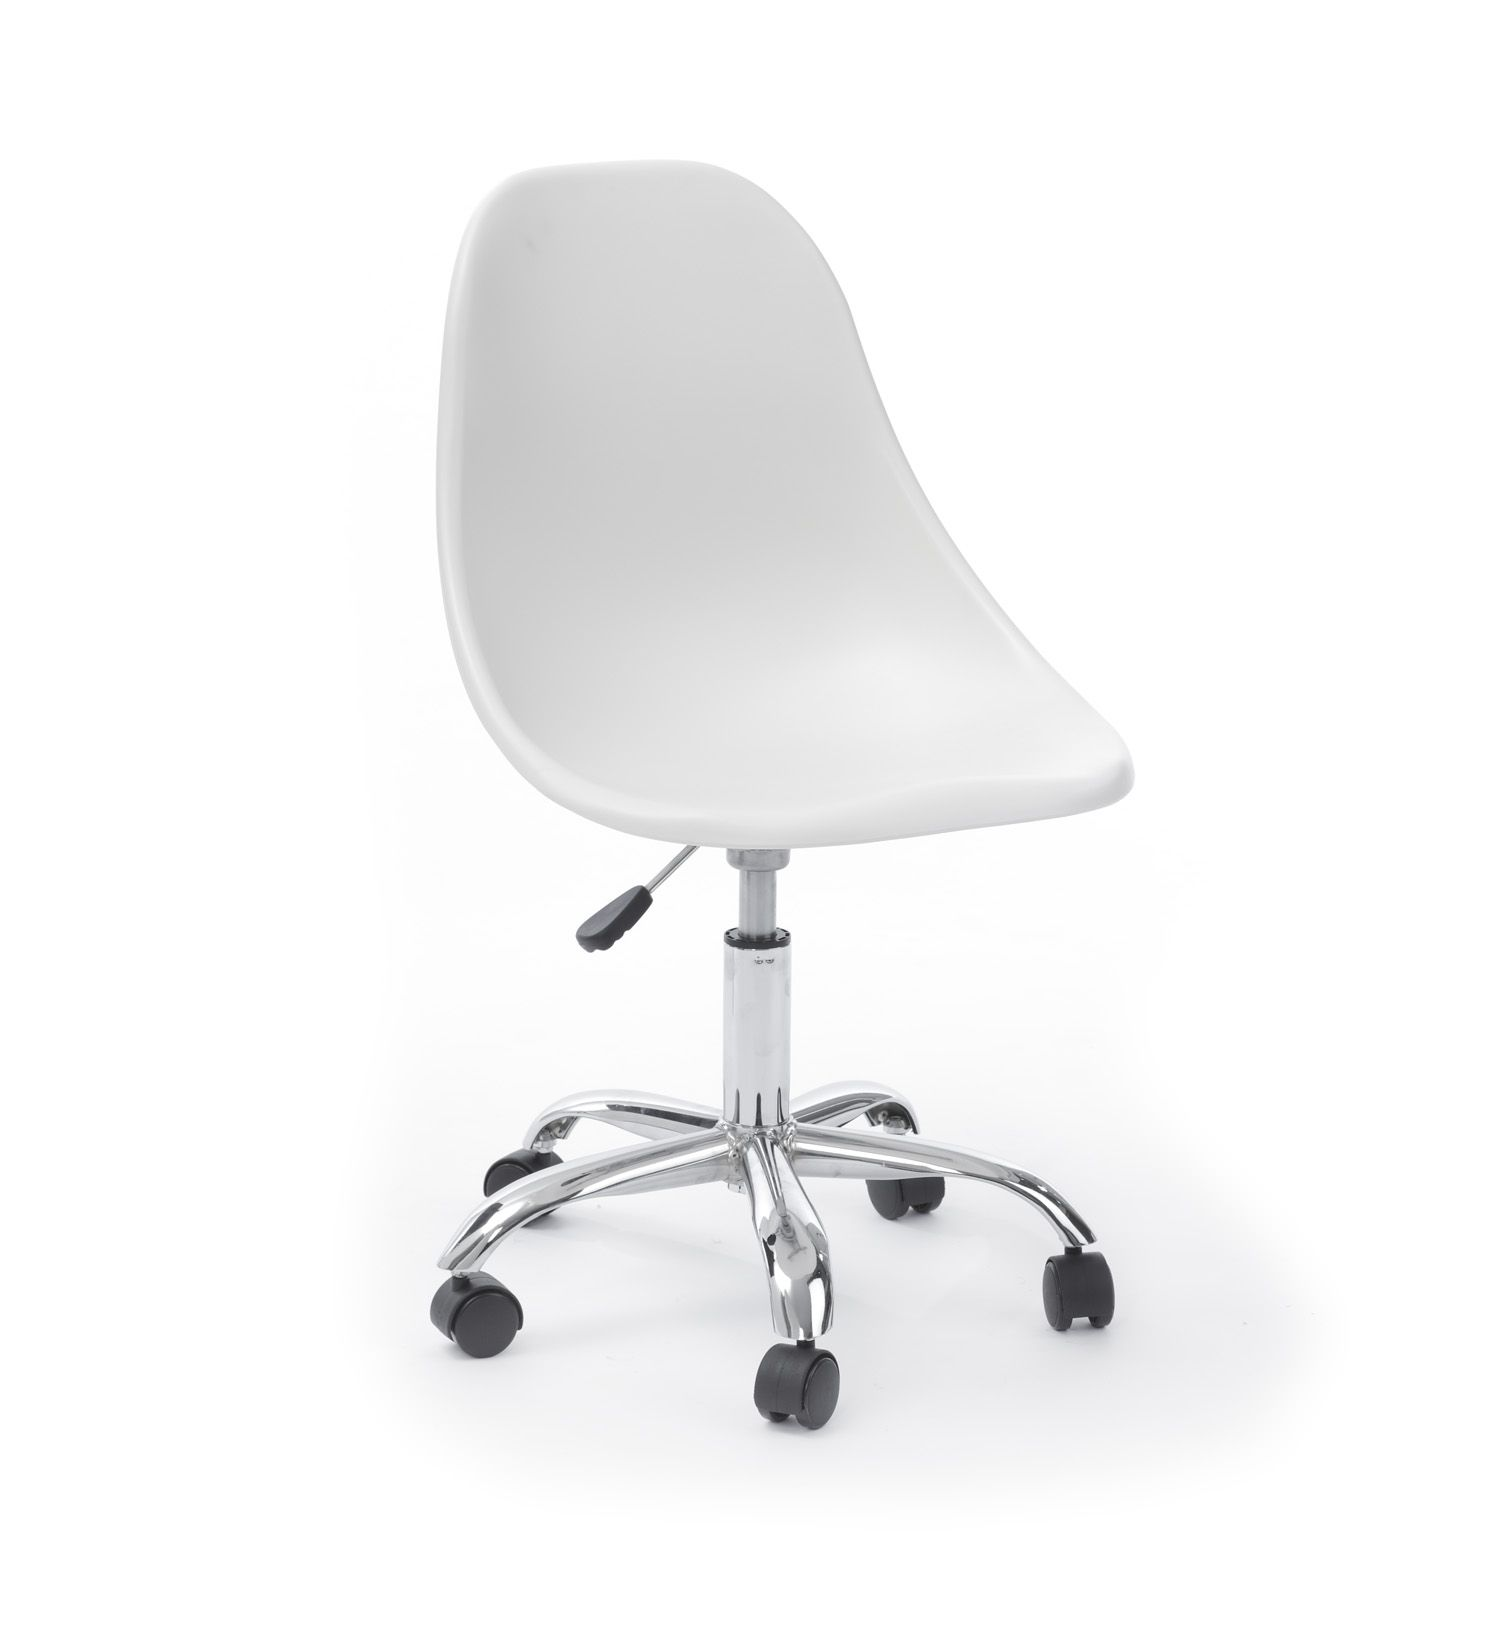 White Desk Chair For Home Office White Desk Chair Fames Plastic